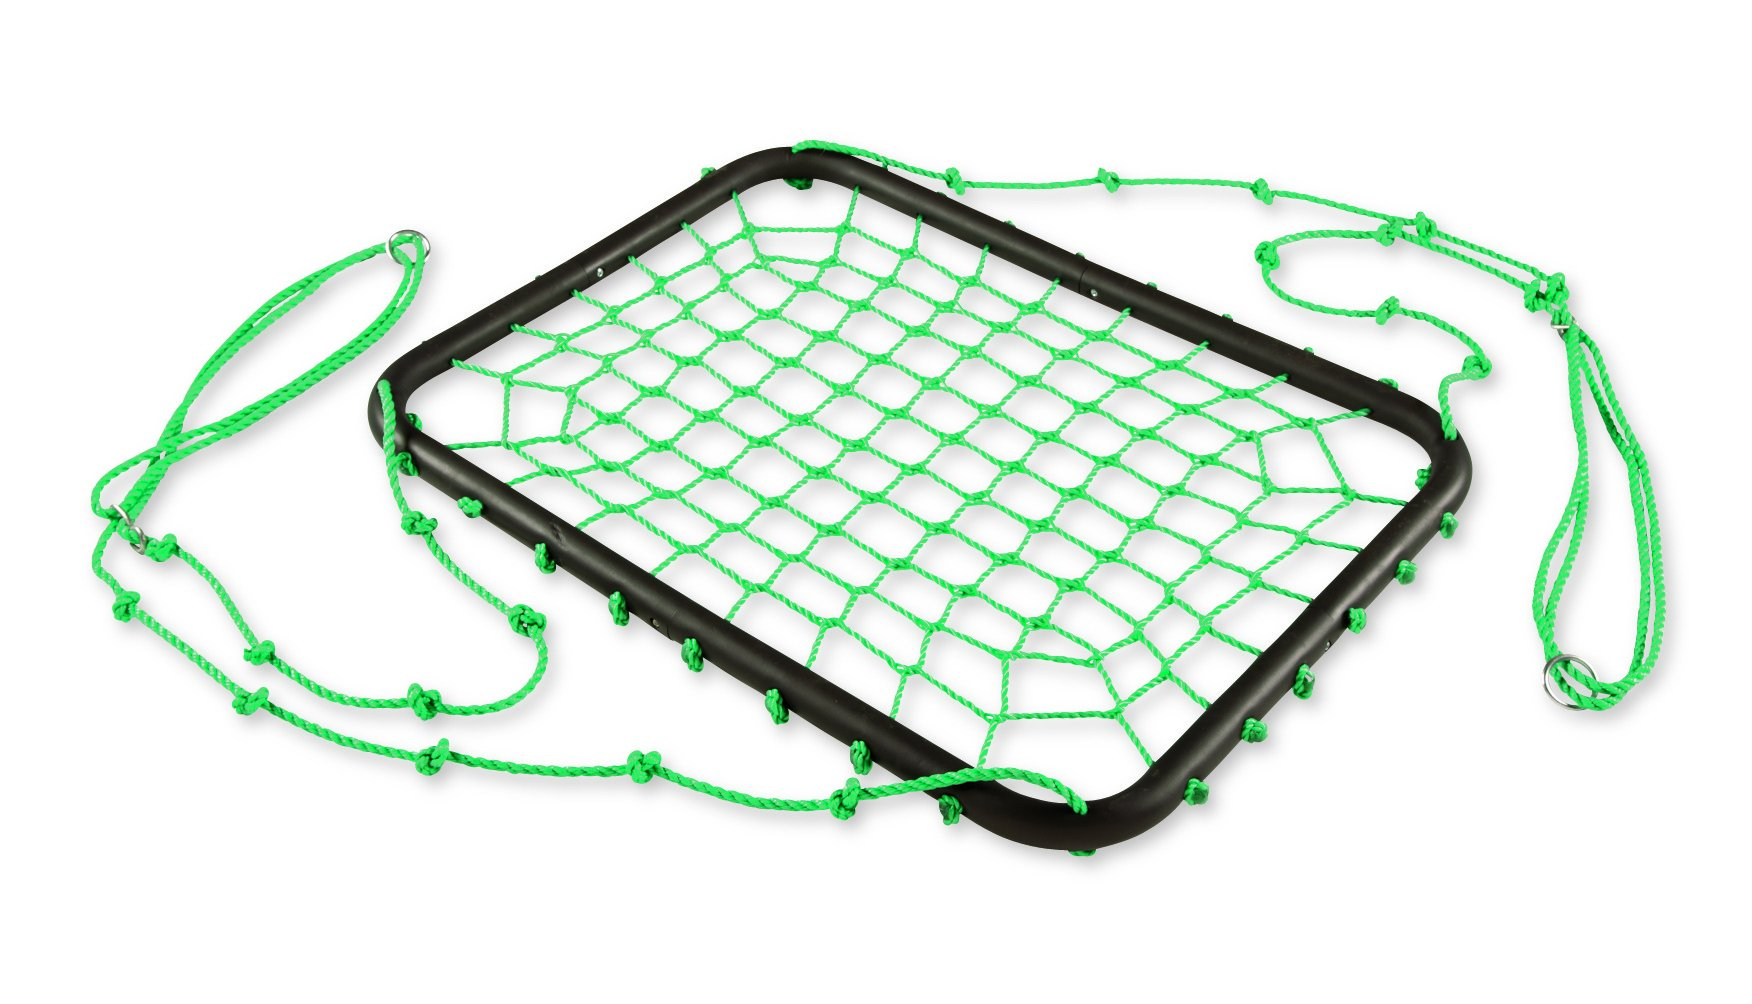 Deluxe Platform Swing, Nylon Rope and Padded Steel Frame - Green - 40''L x 30''W by HearthSong®